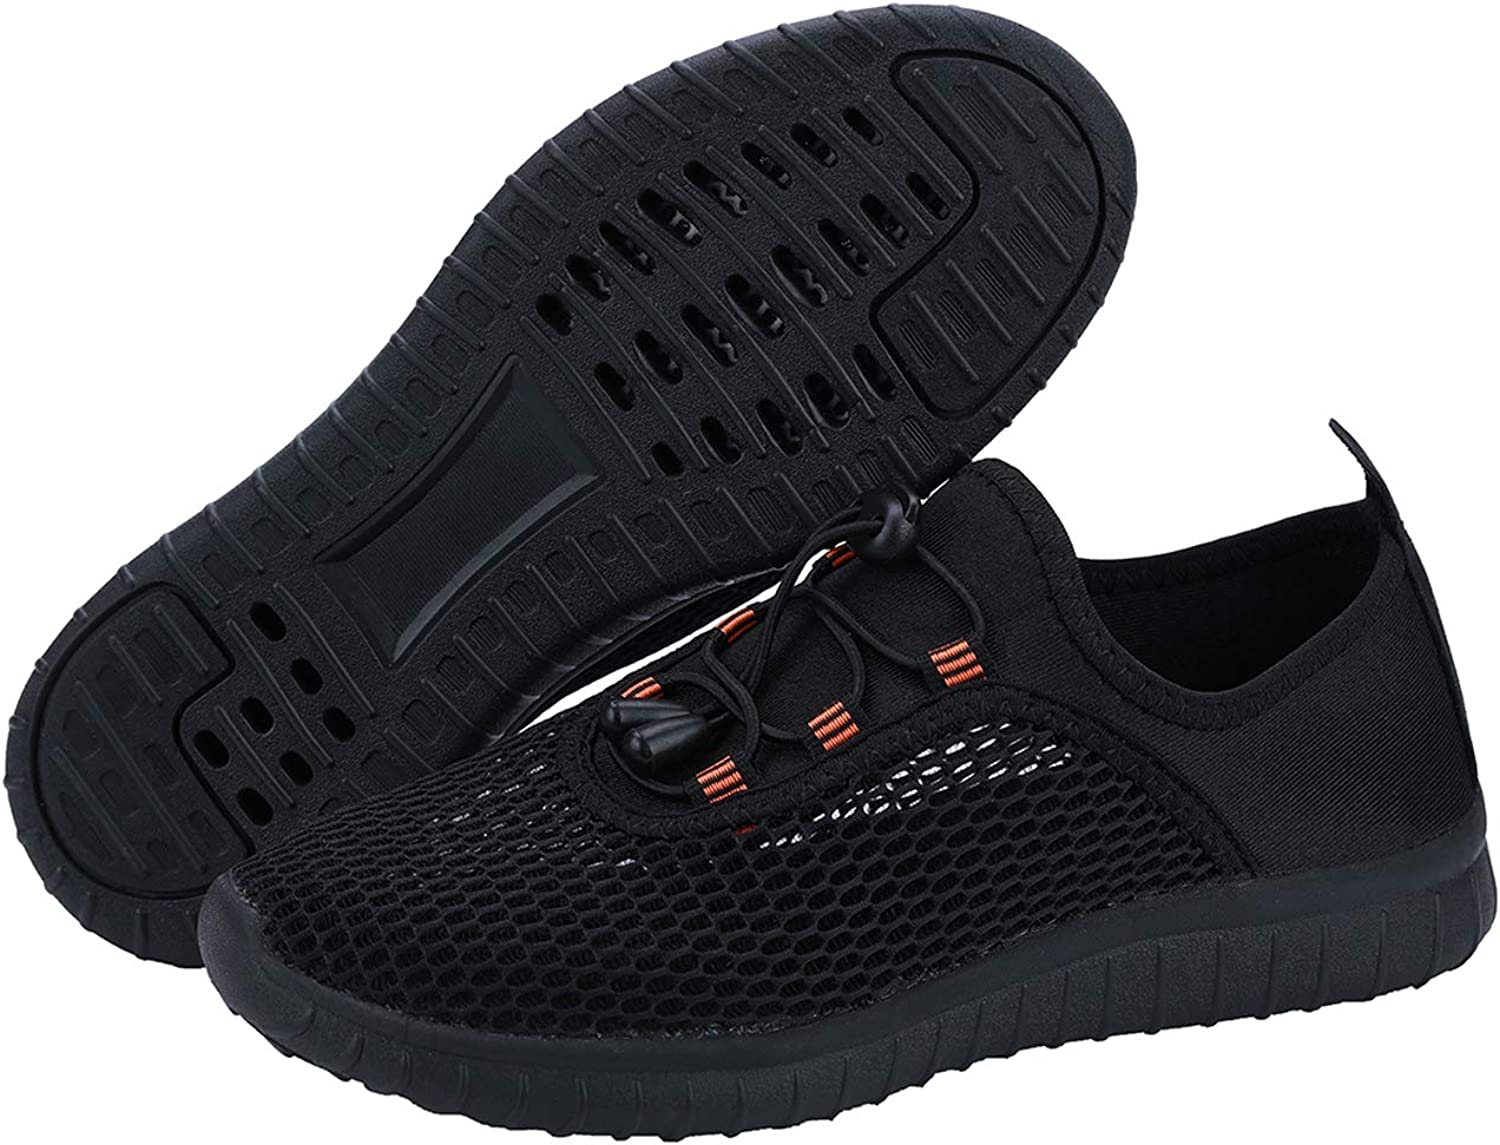 ANYUETE Women's Quick Dry Aqua Water Shoes Lightweight Athletic Sports Shoes